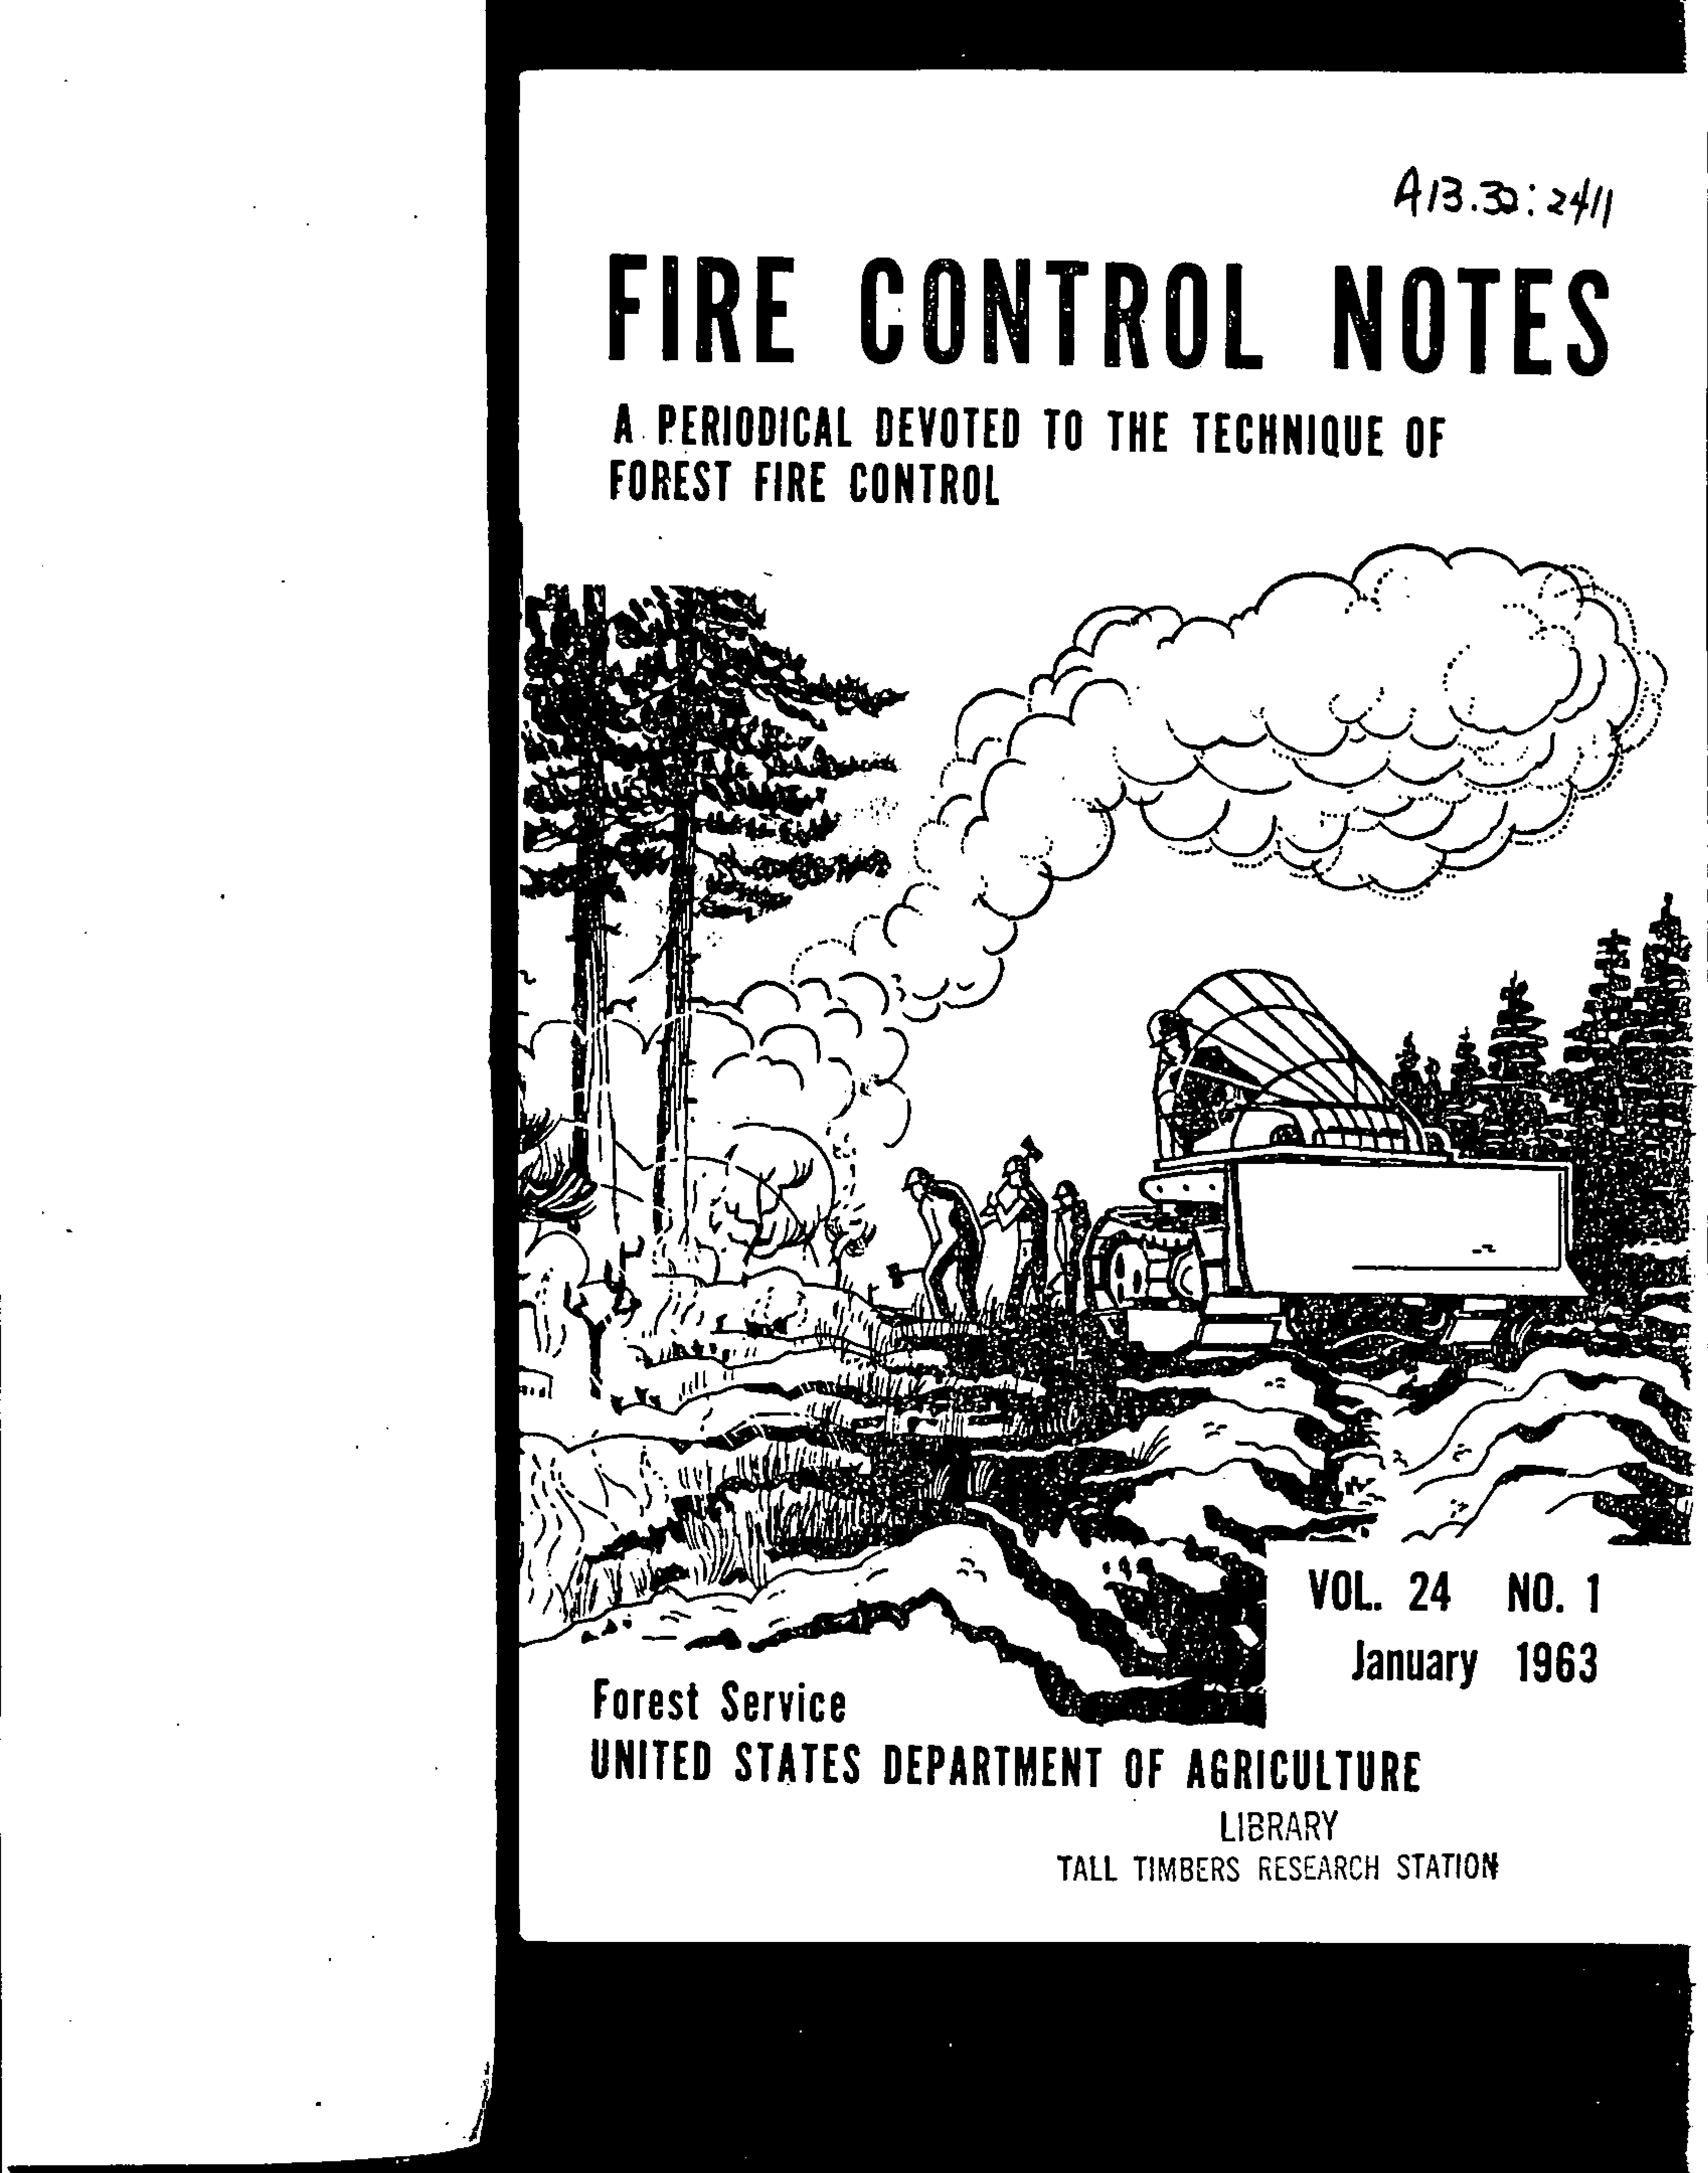 Cover of Fire Management Today Volume 24, Issue 01